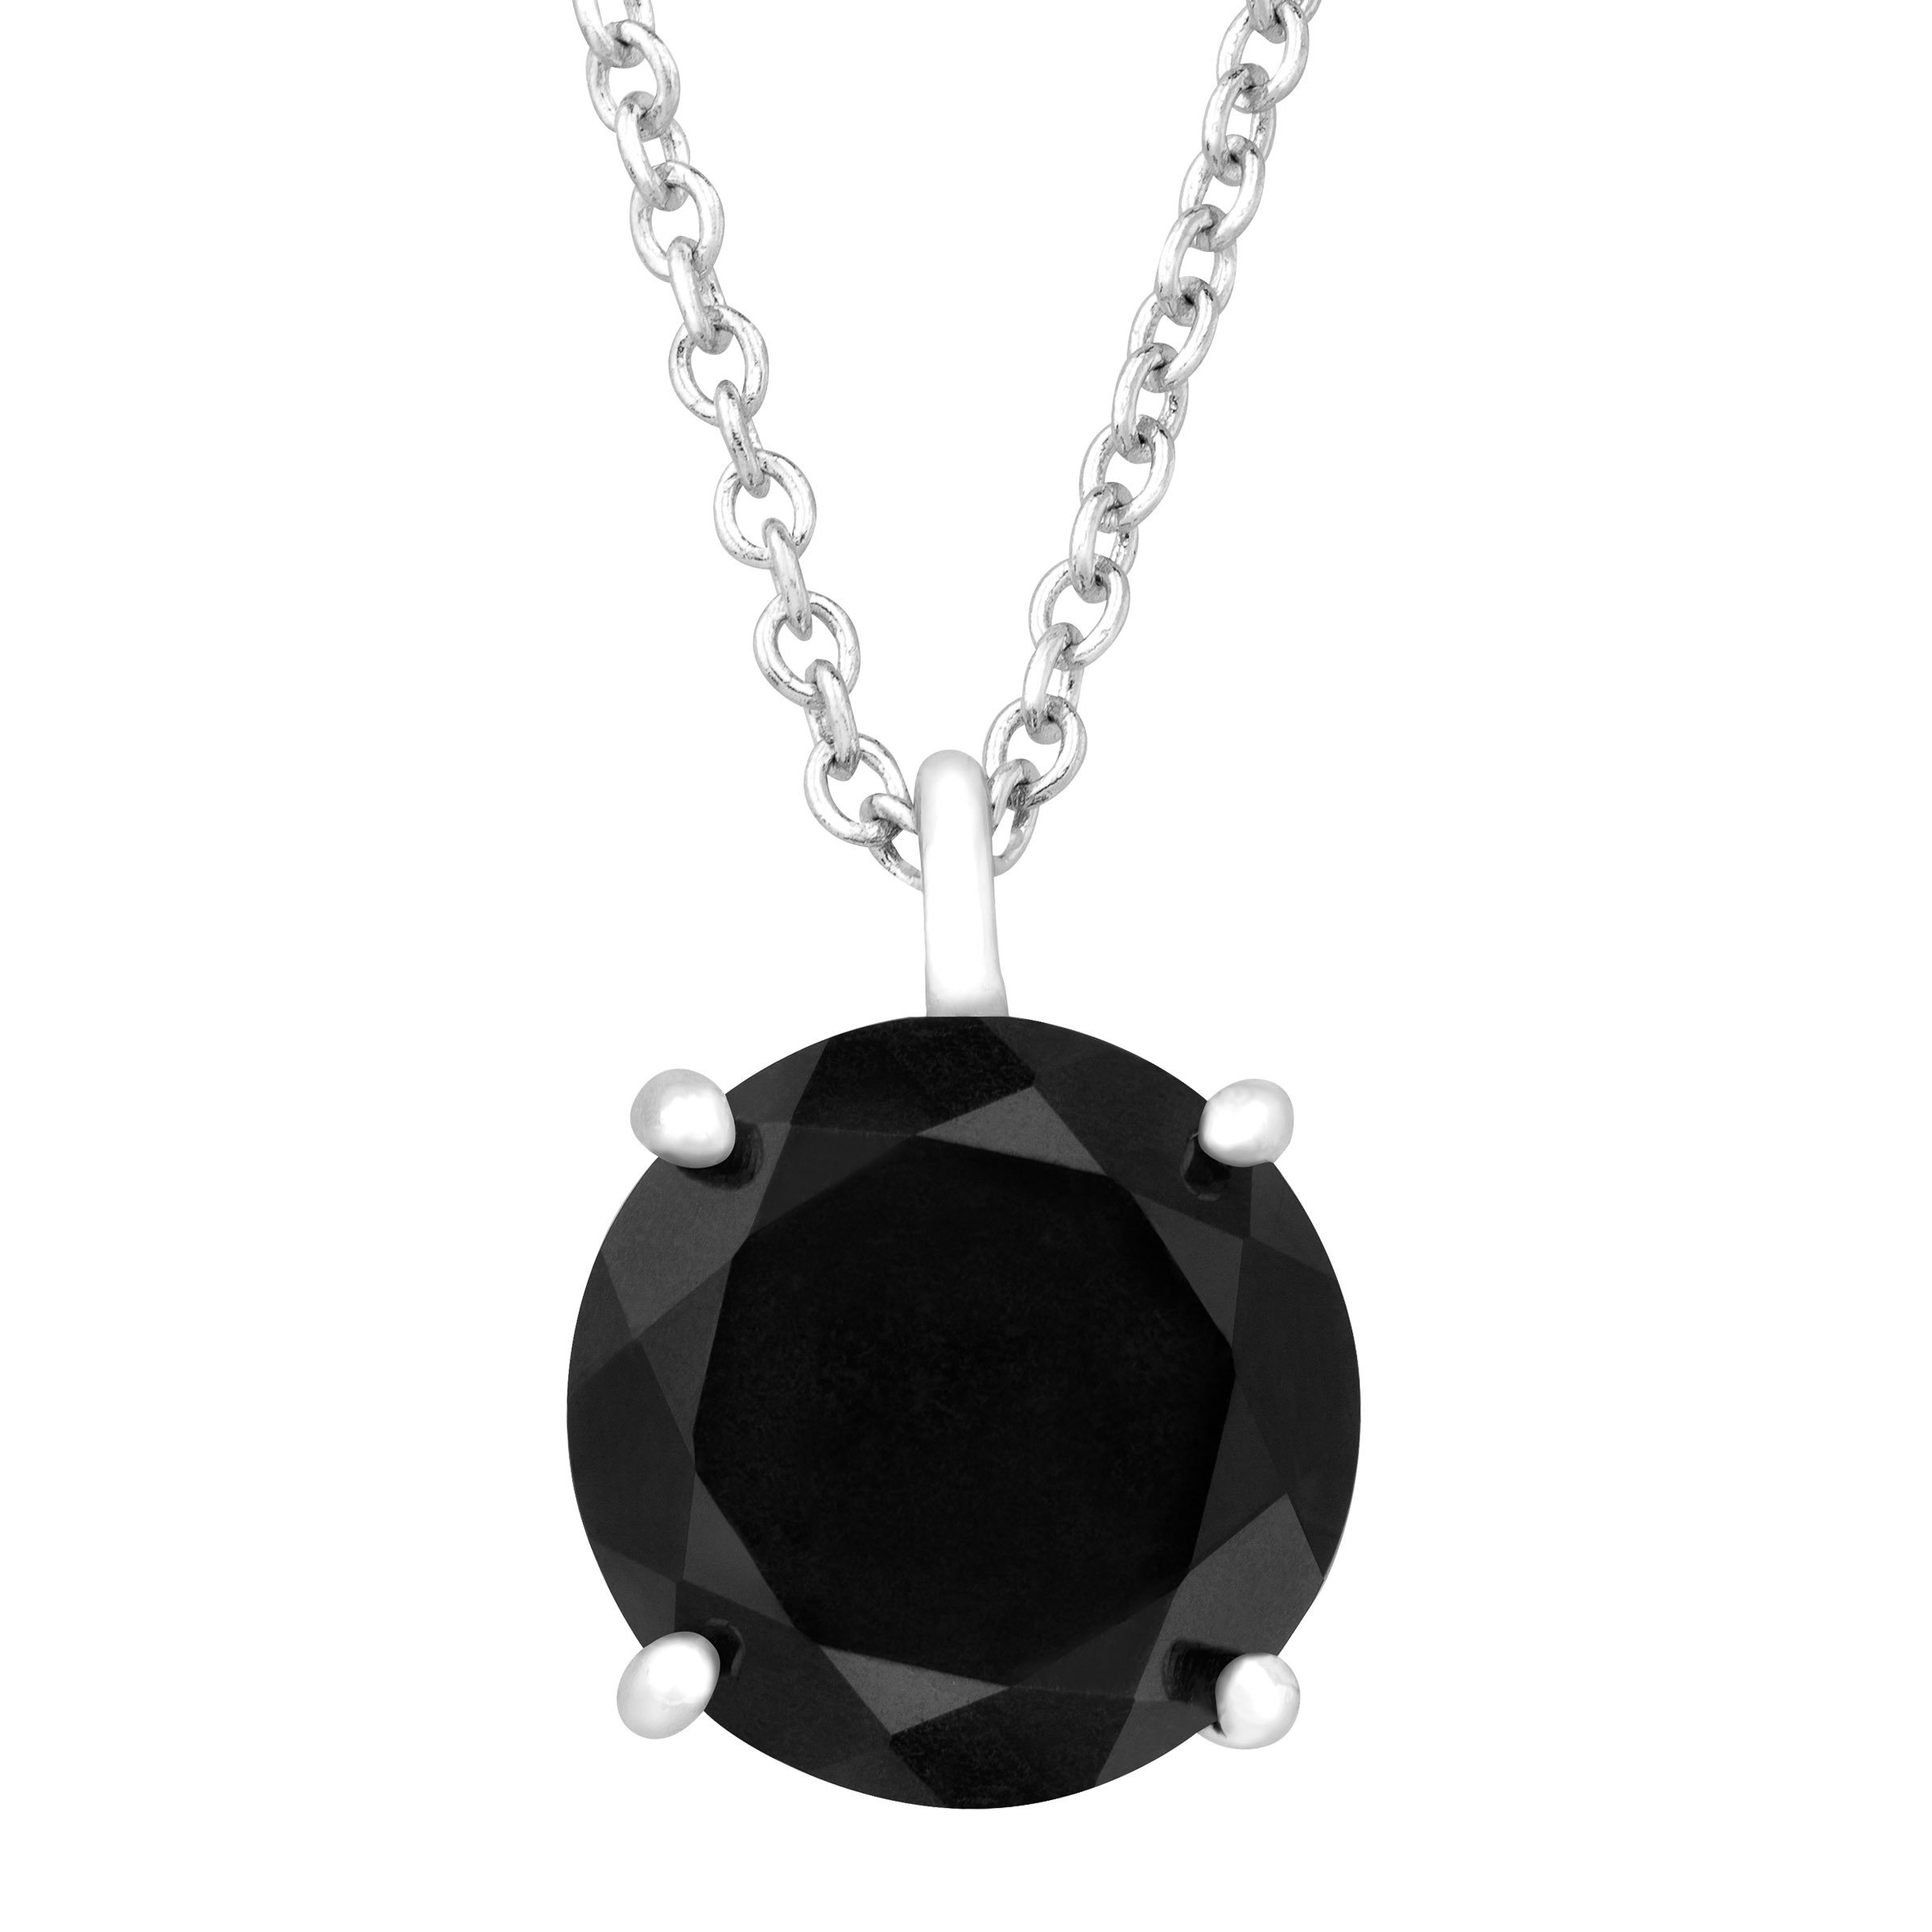 10 mm Certified Natural Black Jade Pendant Necklace in Sterling Silver by Finecraft